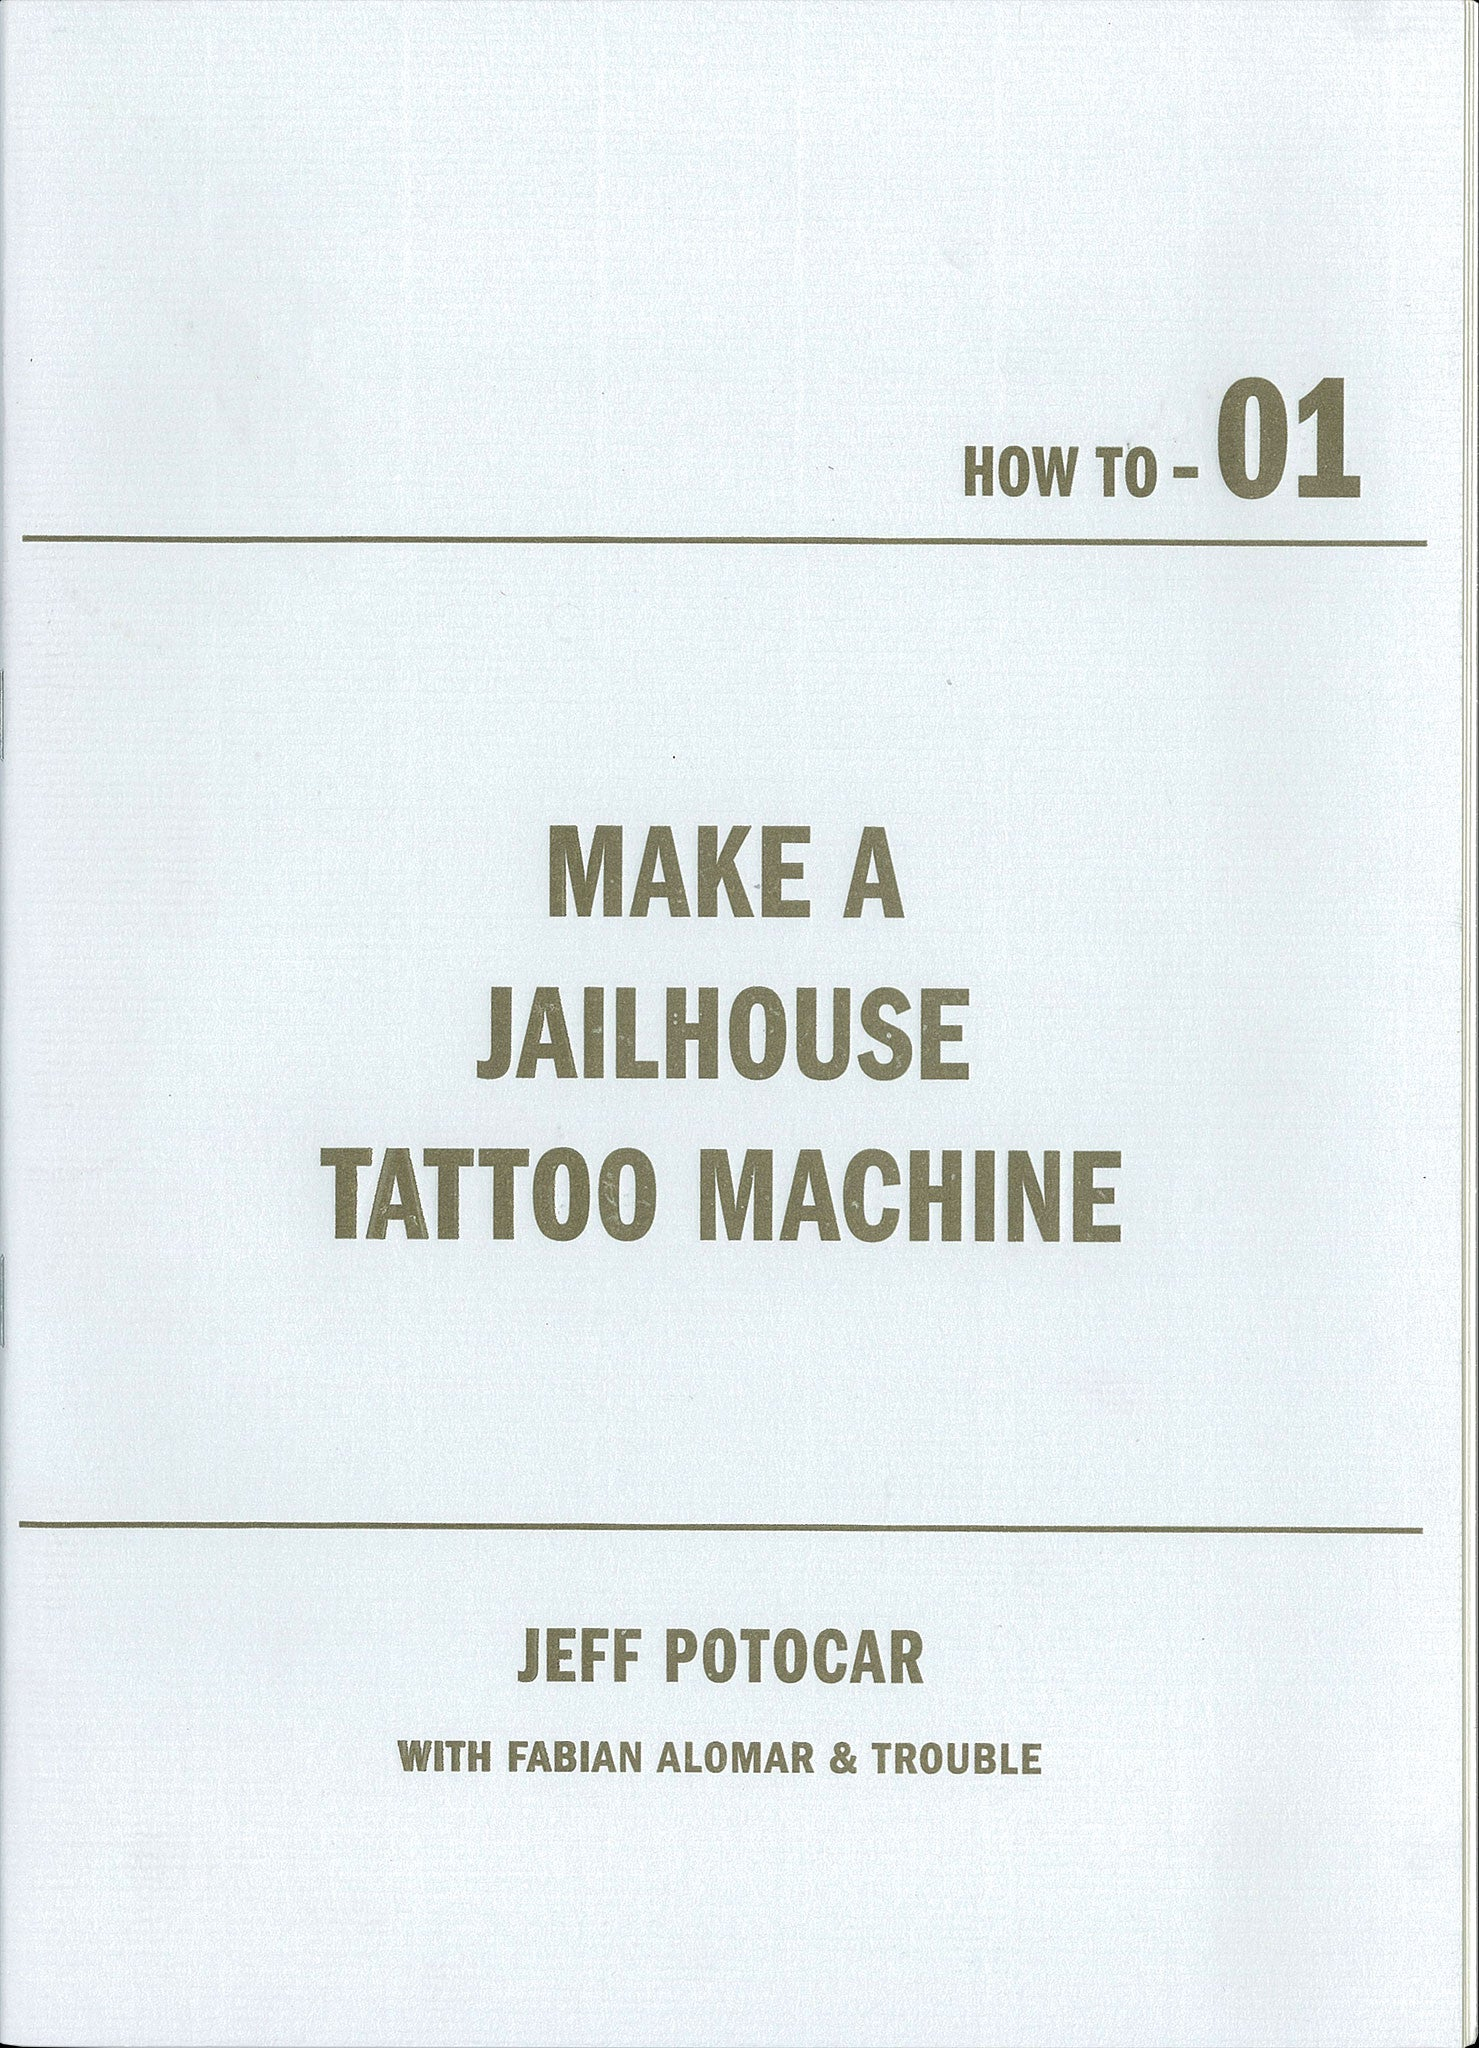 JEFF POTOCAR. How to #01.<br>Make a Jailhouse Tattoo Machine.